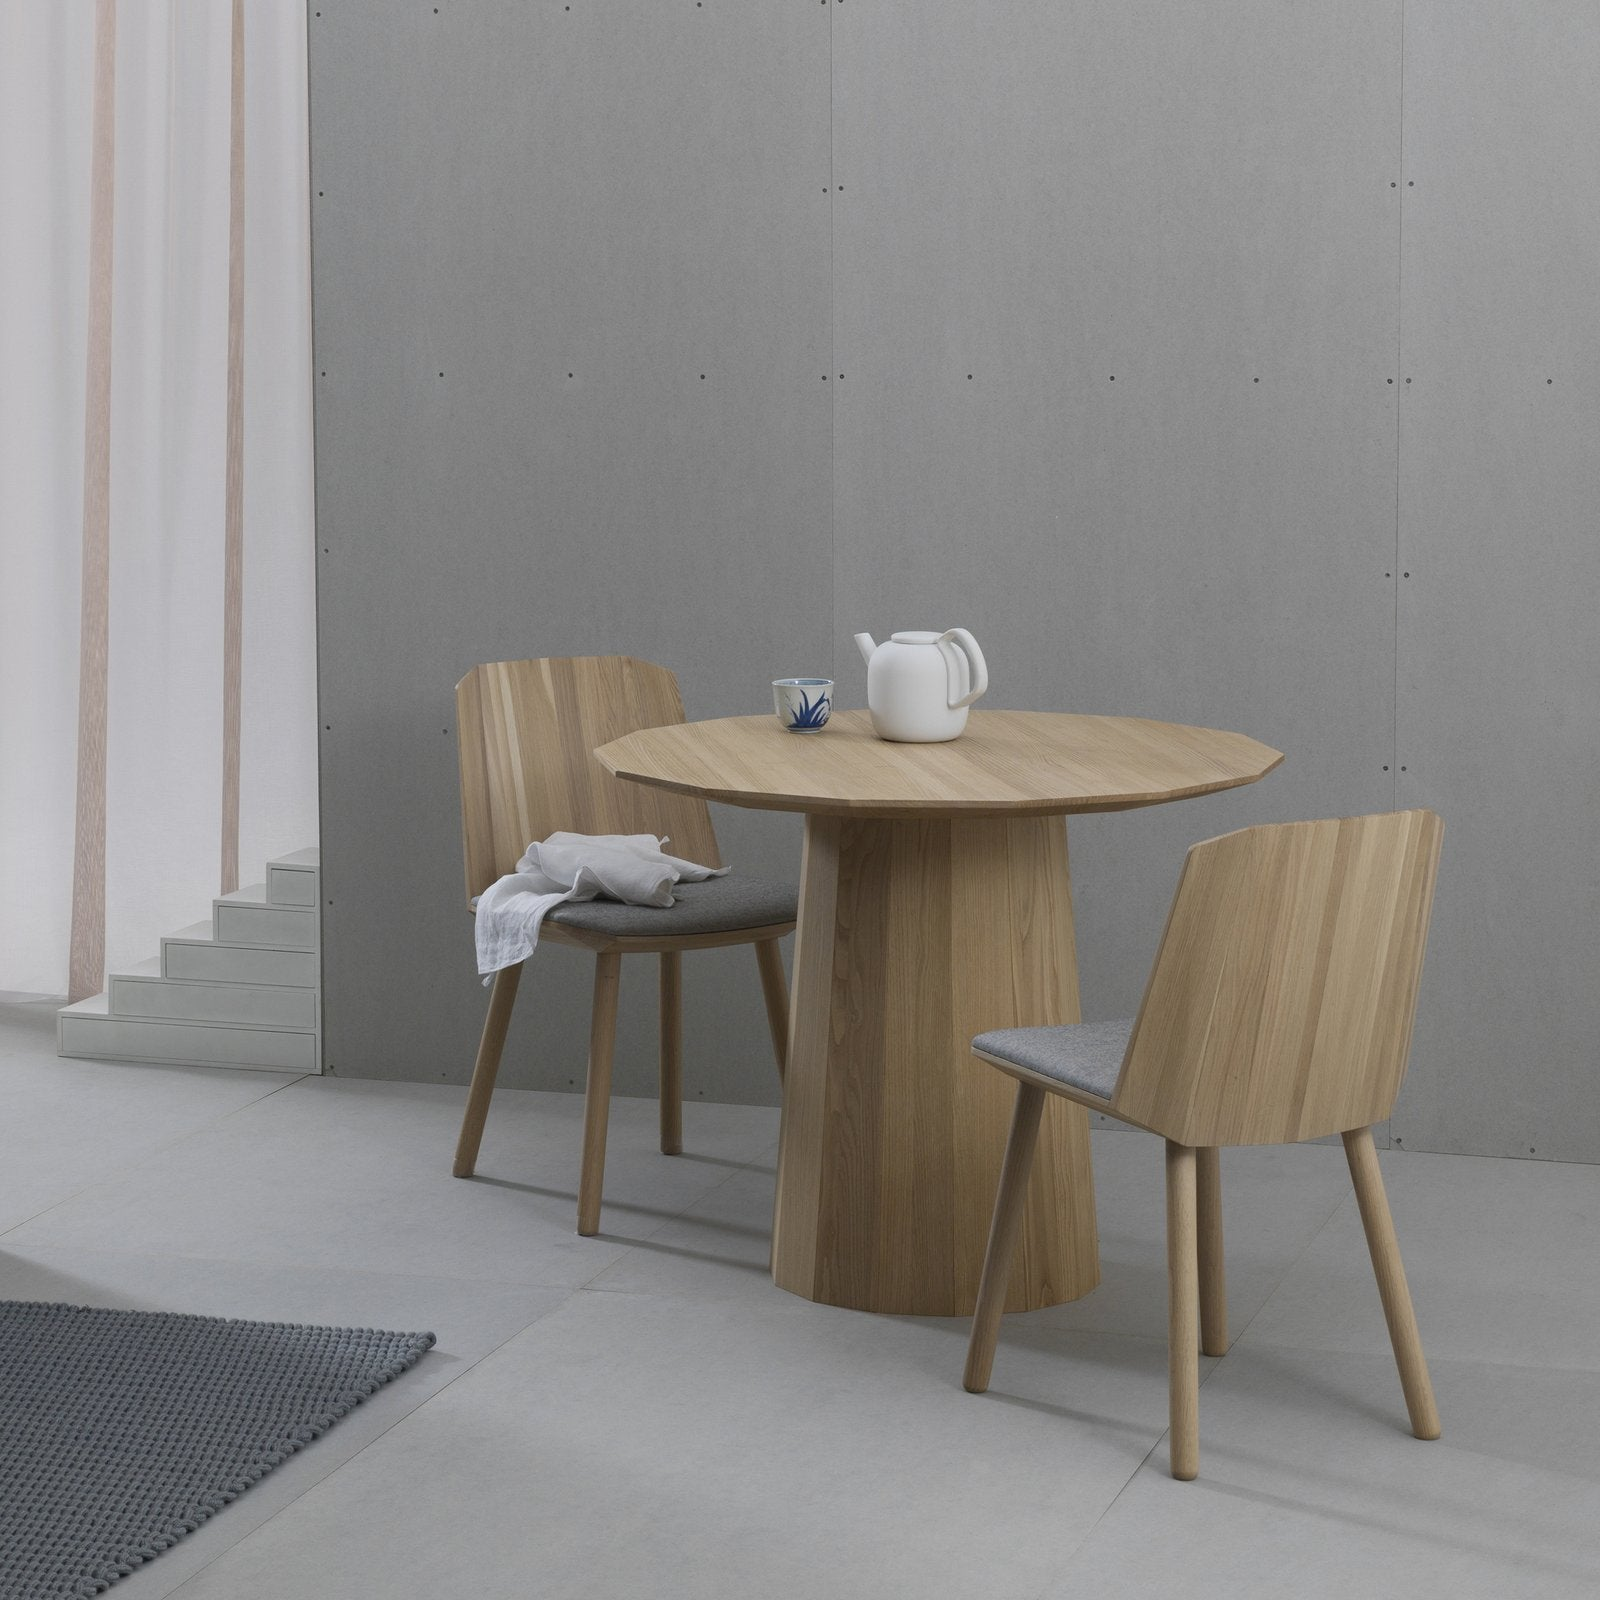 Karimoku New Standard - COLOUR WOOD CHAIR NATURAL